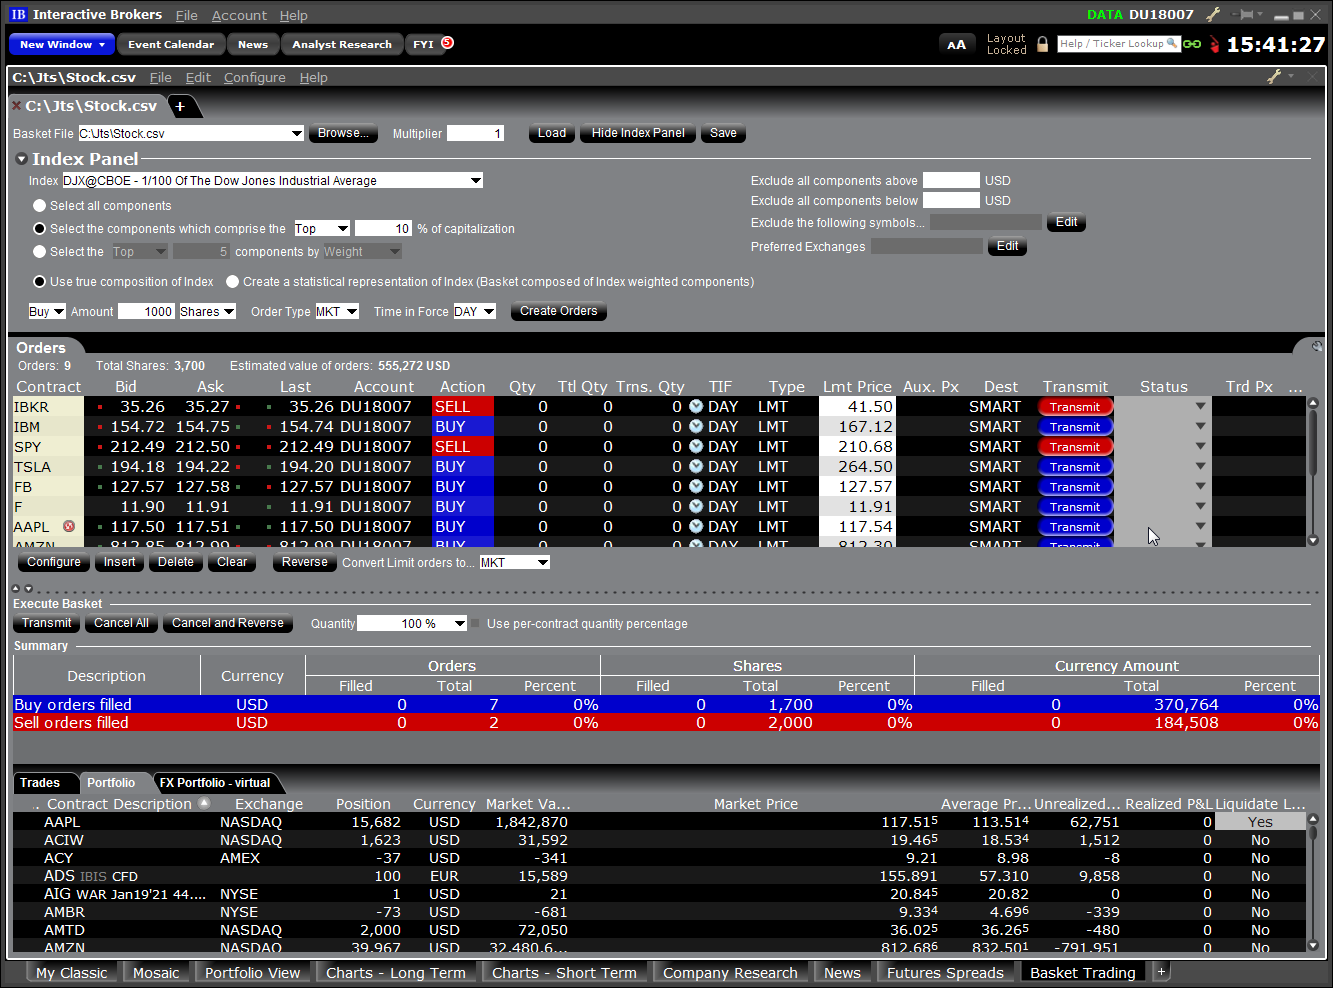 TWS Workspace Layout Library | Interactive Brokers